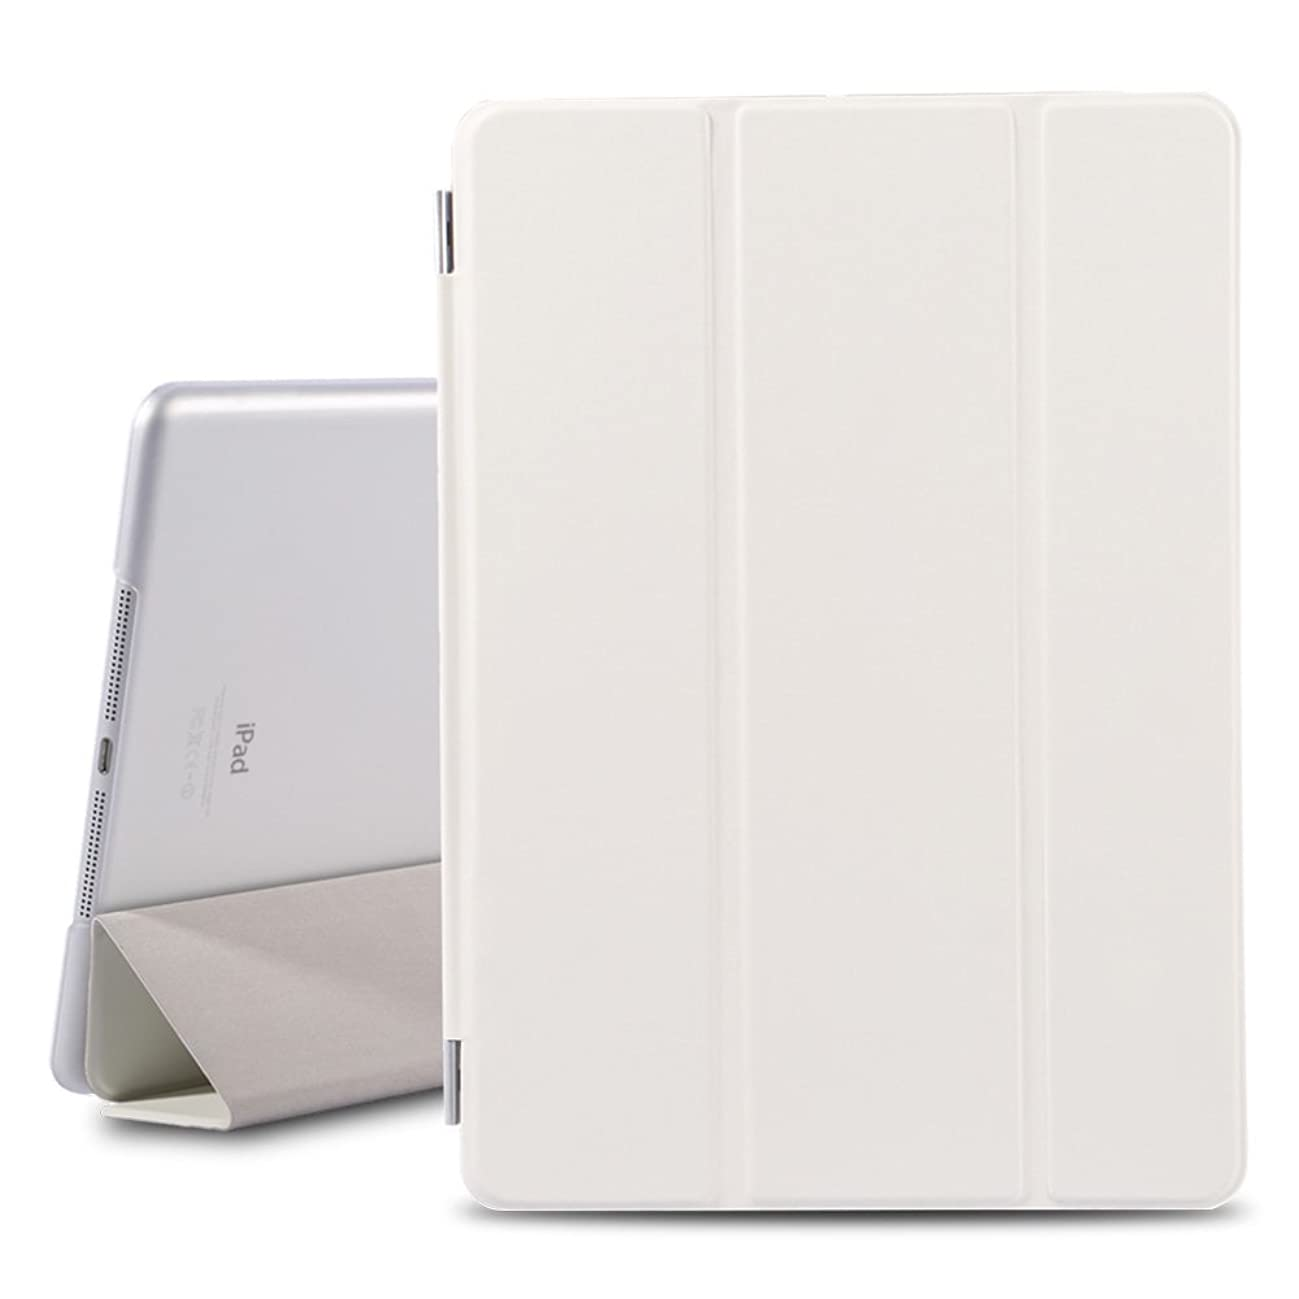 iPad Air Case, iPad 5 Cover, Slim Fit Leather Protect Case Cover for Apple iPad Air (iPad 5th Generation) with Automatic Wake-up / Sleep Function - White